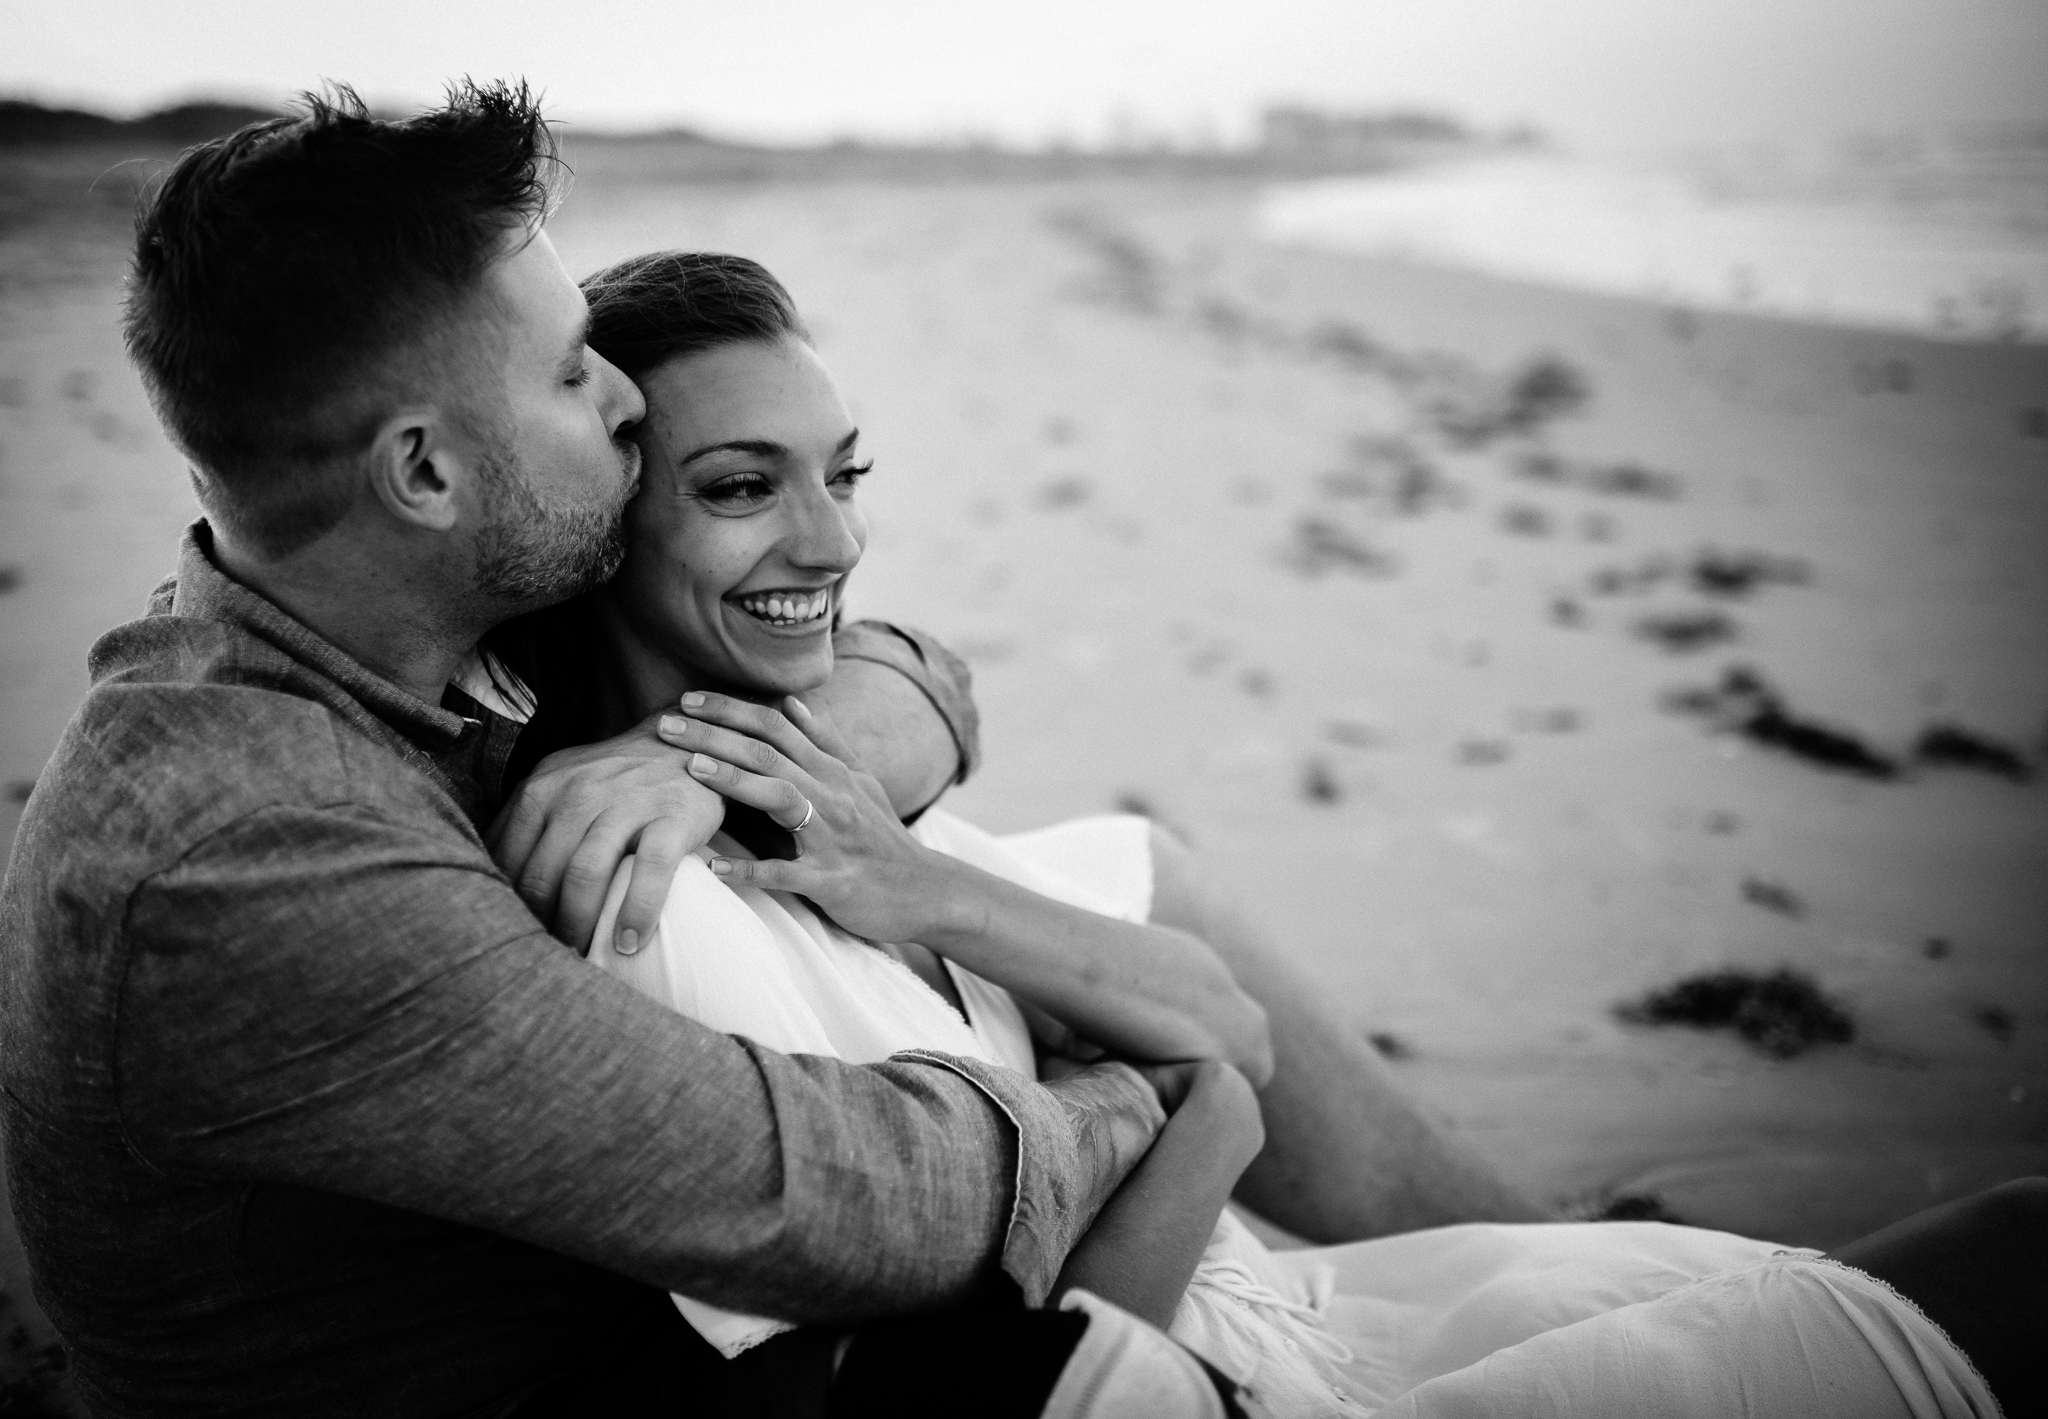 emotionstorytelling.familyphotography.fortpierce.florida.virginiaweddingphotographer.beach.Fortpierceinletstatepark-77.jpg